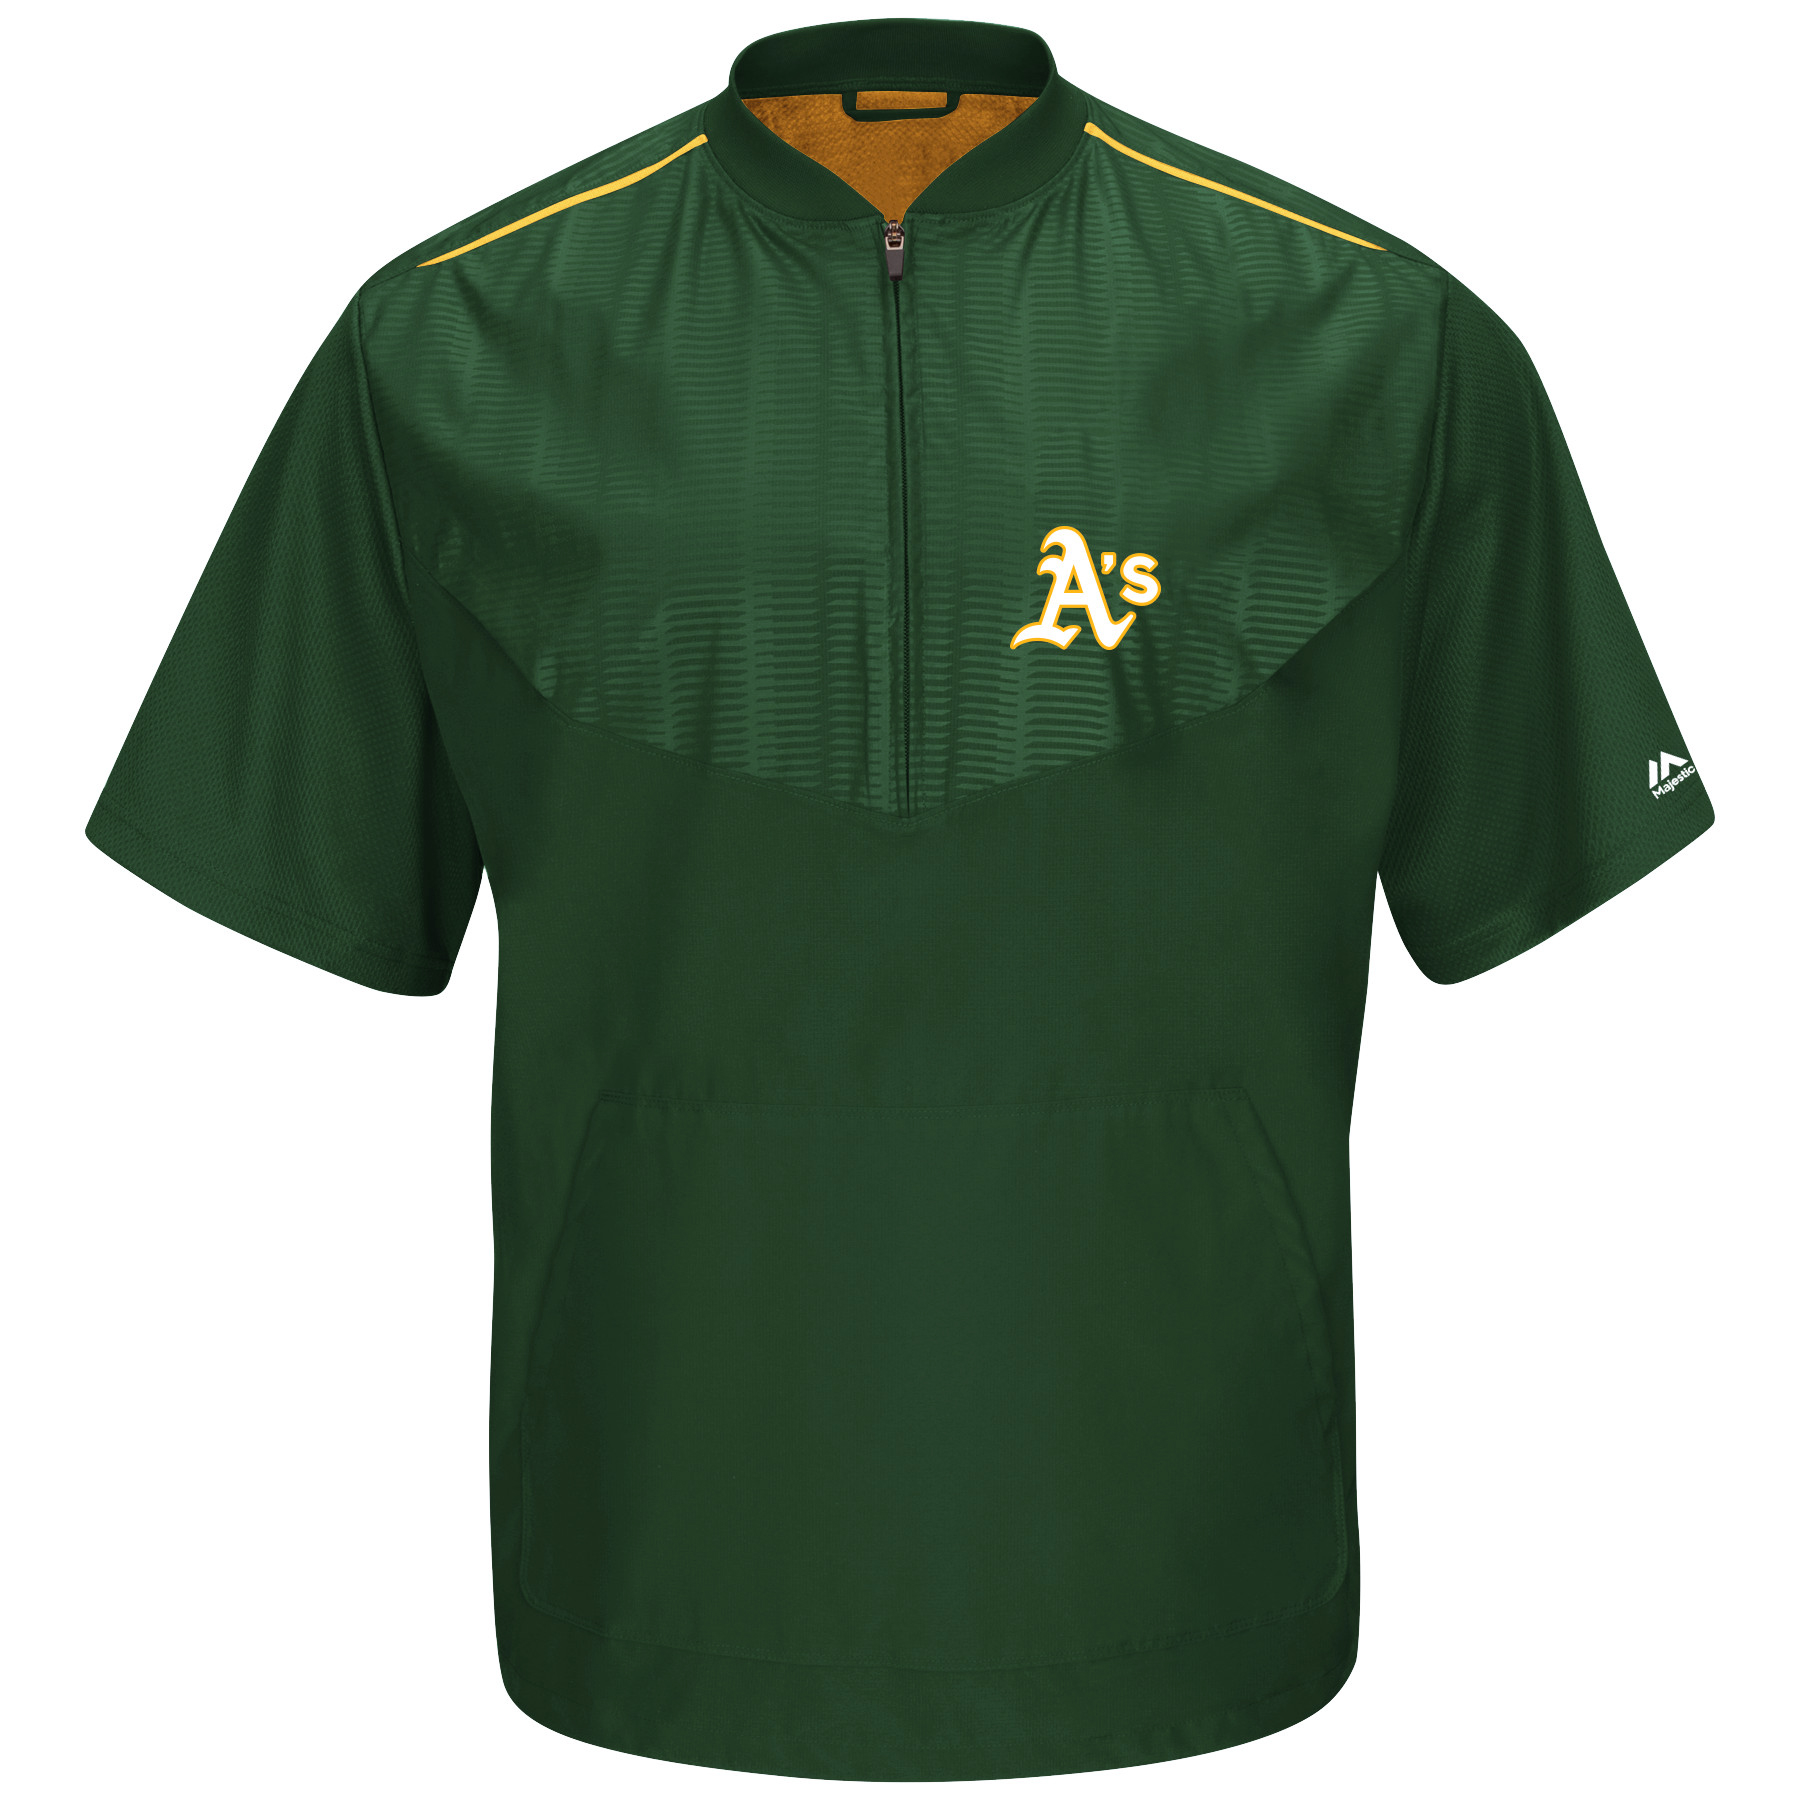 Men's Majestic Green Oakland Athletics Big & Tall Cool Base On Field Short Sleeve Training Jacket